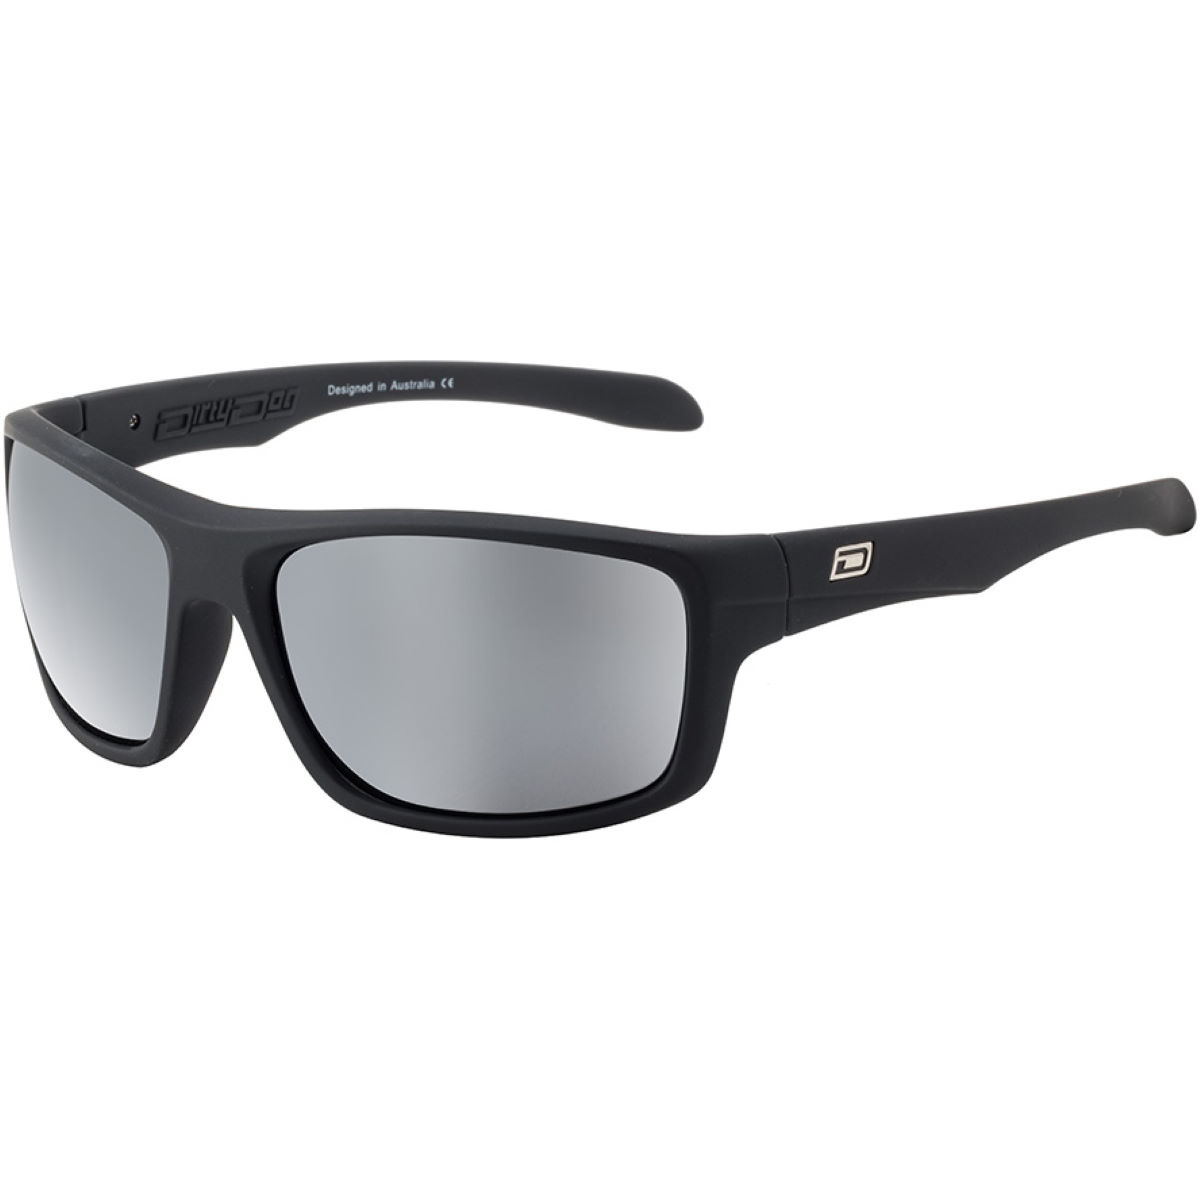 Dirty Dog Axle Mirror Polarised Sunglasses - Gafas de sol